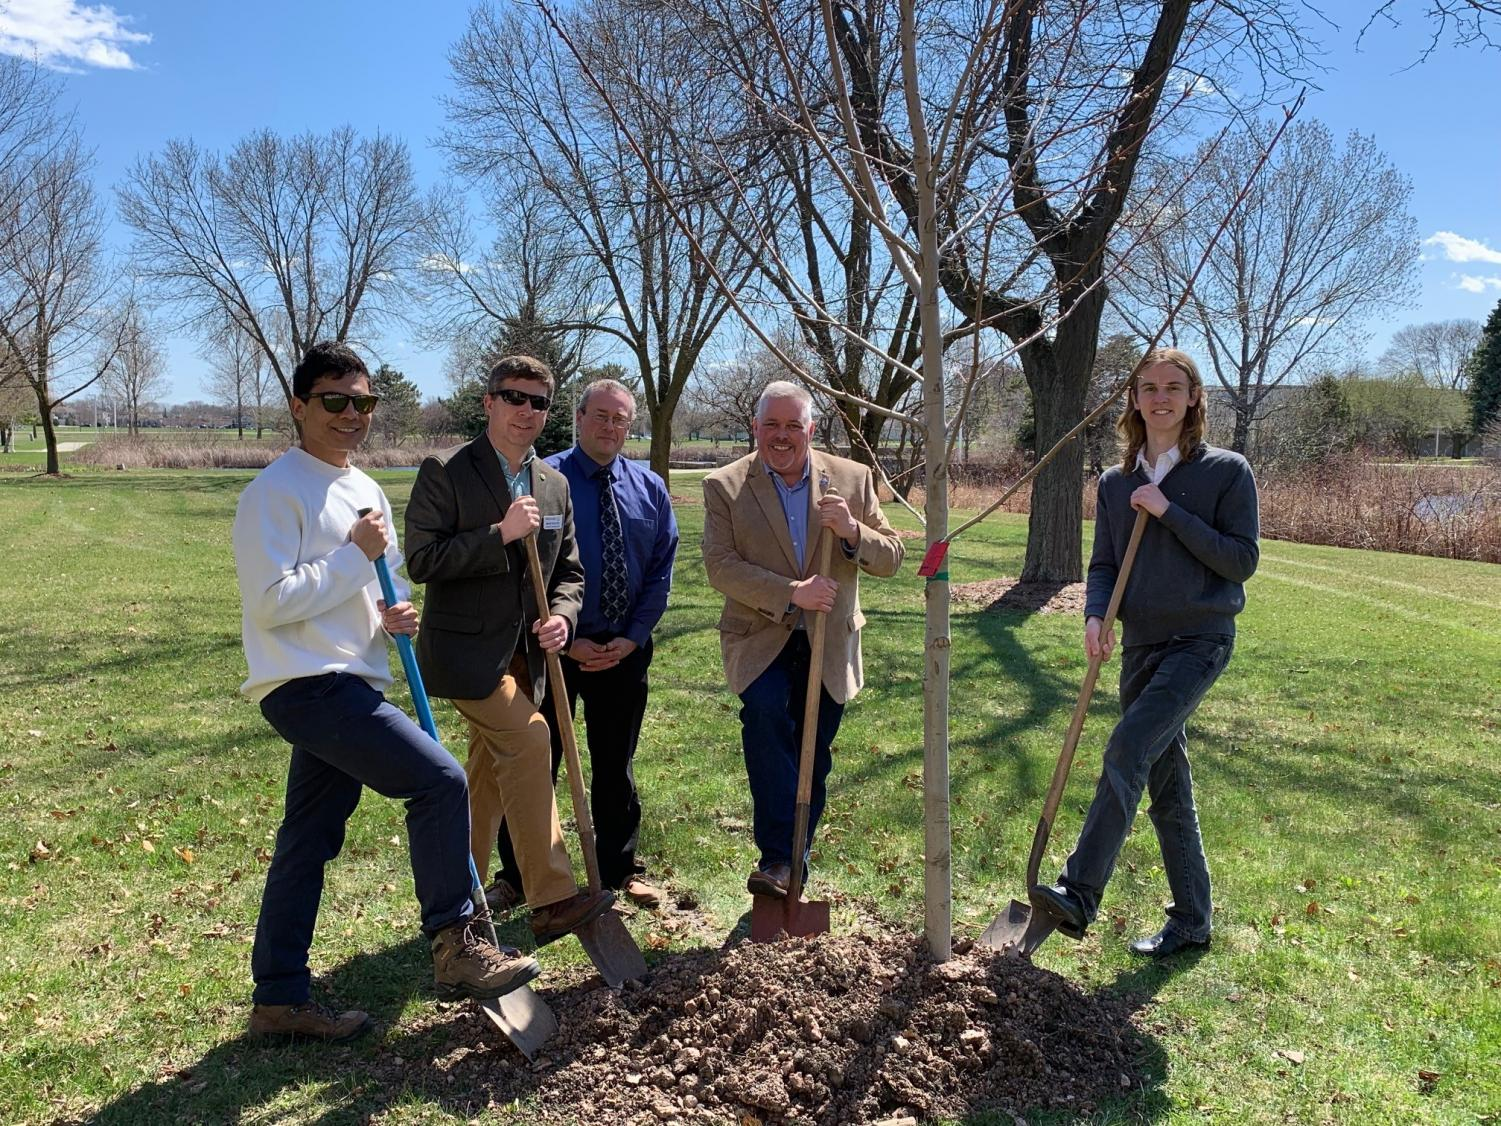 Pictured (left to right): Gilberto Castaneda, UWFDL student; Brian Kolstad, president, FDL City Council; Martin Rudd, vice chancellor, UWFDL and UWFV; Brendan Stormo, past-president, FDL Morning Rotary; and Erik Janssen, UWFDL student plant trees.